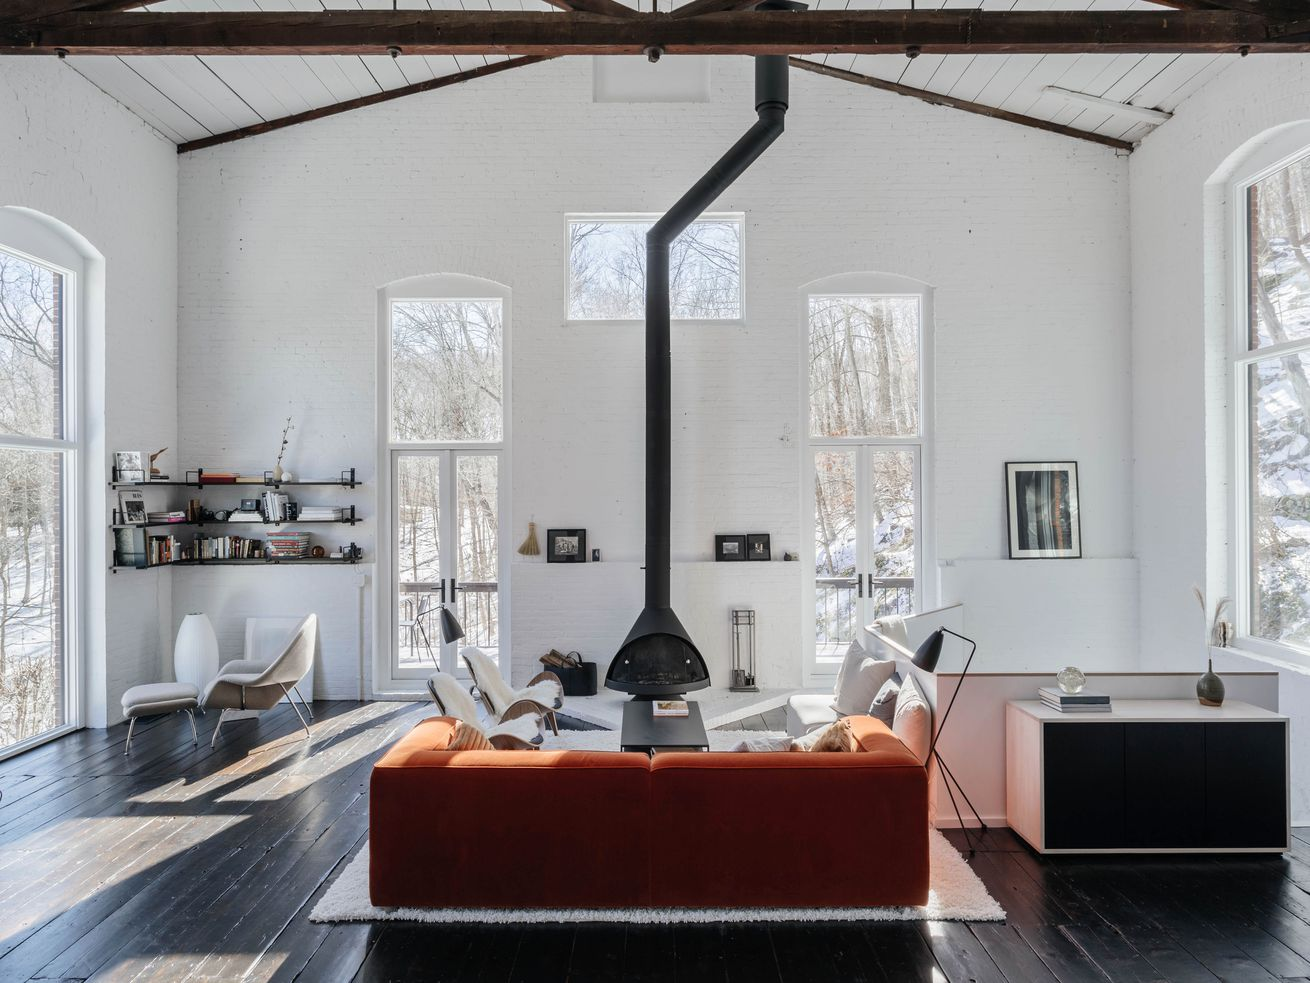 Former ore foundry renovated into stunning weekend home